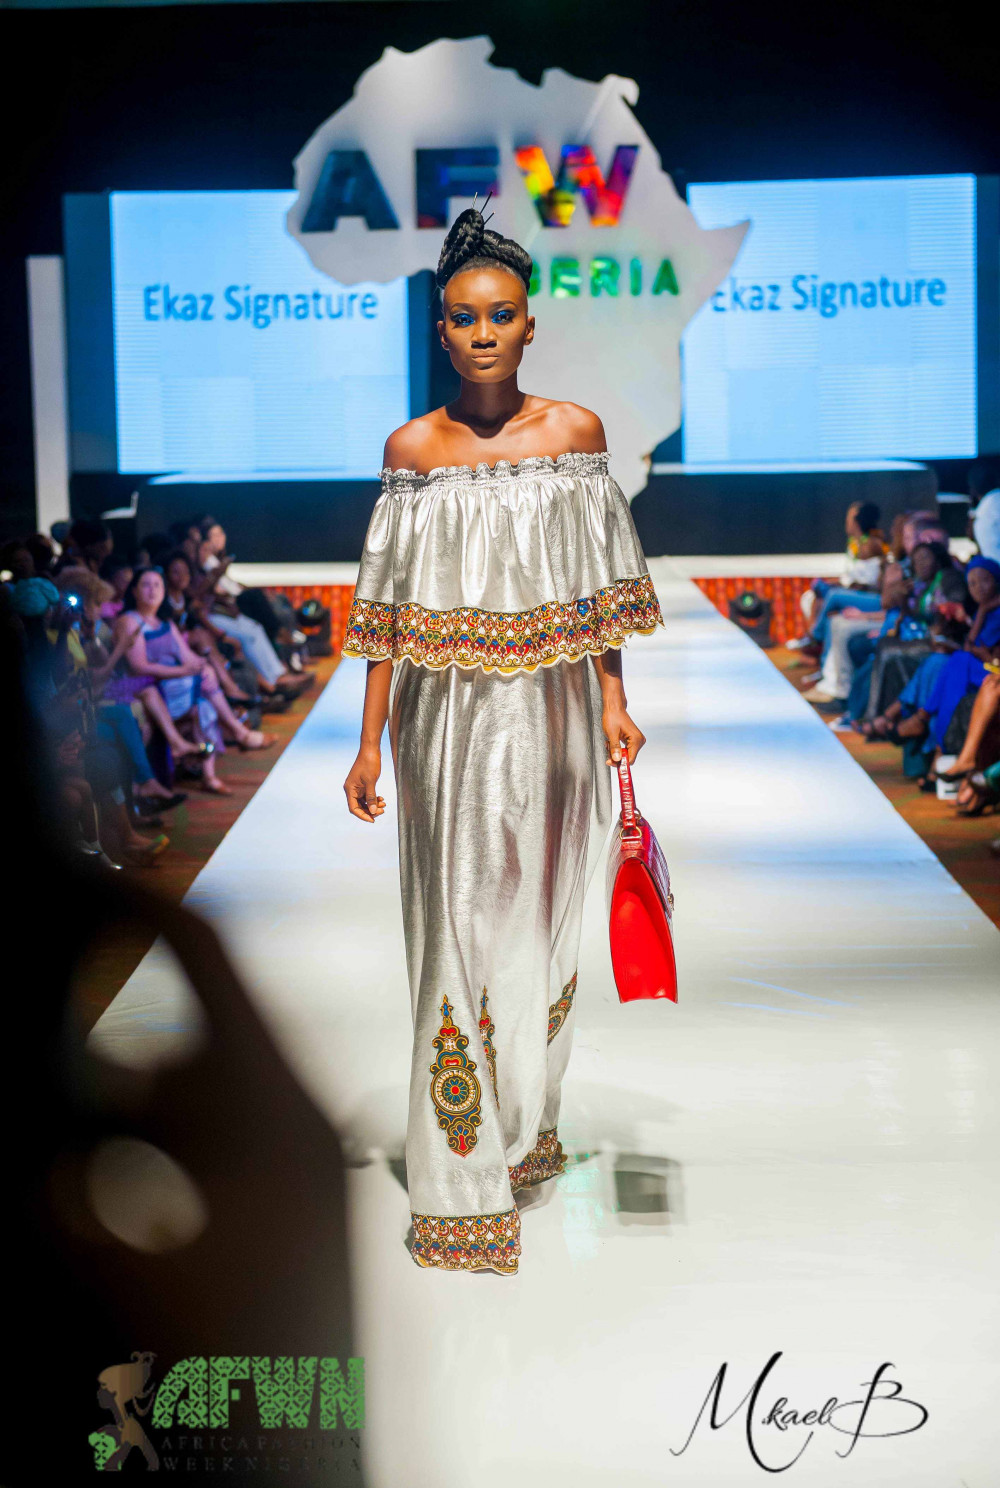 2016 Africa Fashion Week Nigeria: Ekaz Signatures